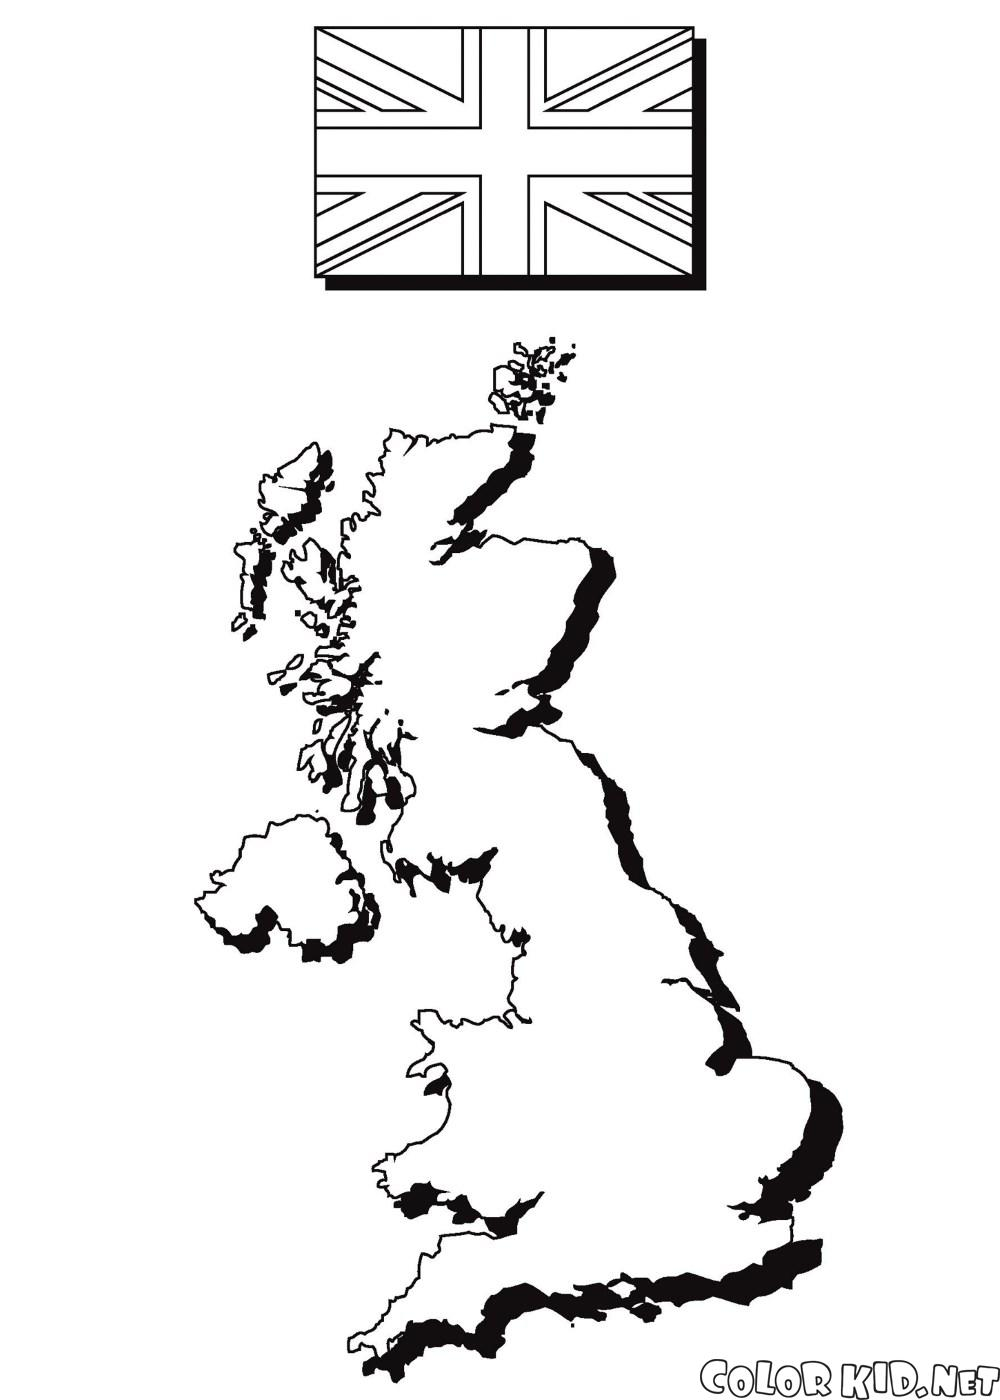 The map and the flag of England